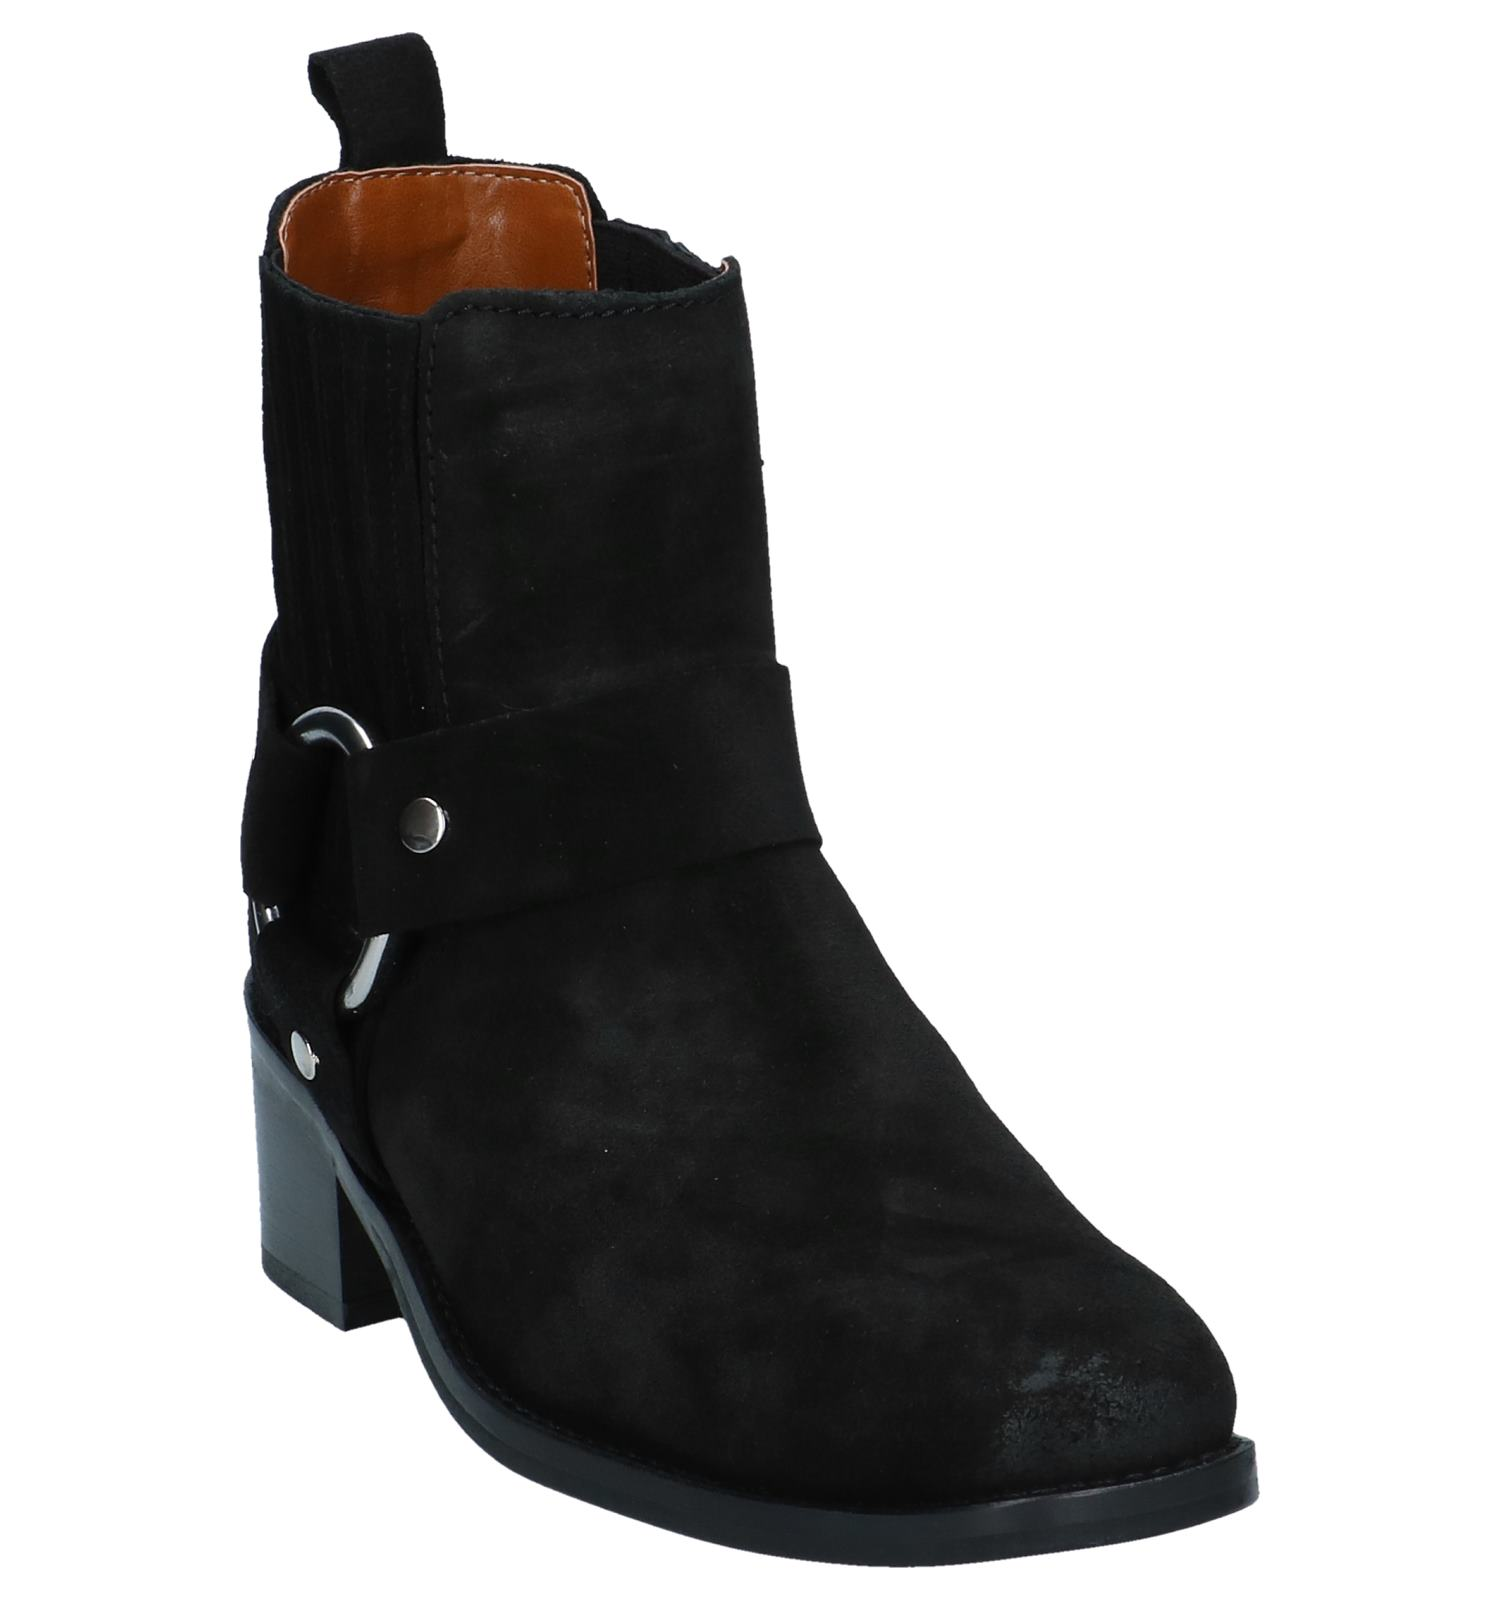 Western Bullboxer Western Boots Bullboxer Zwarte Bullboxer Boots Zwarte Boots Zwarte Western 3RA5jLq4